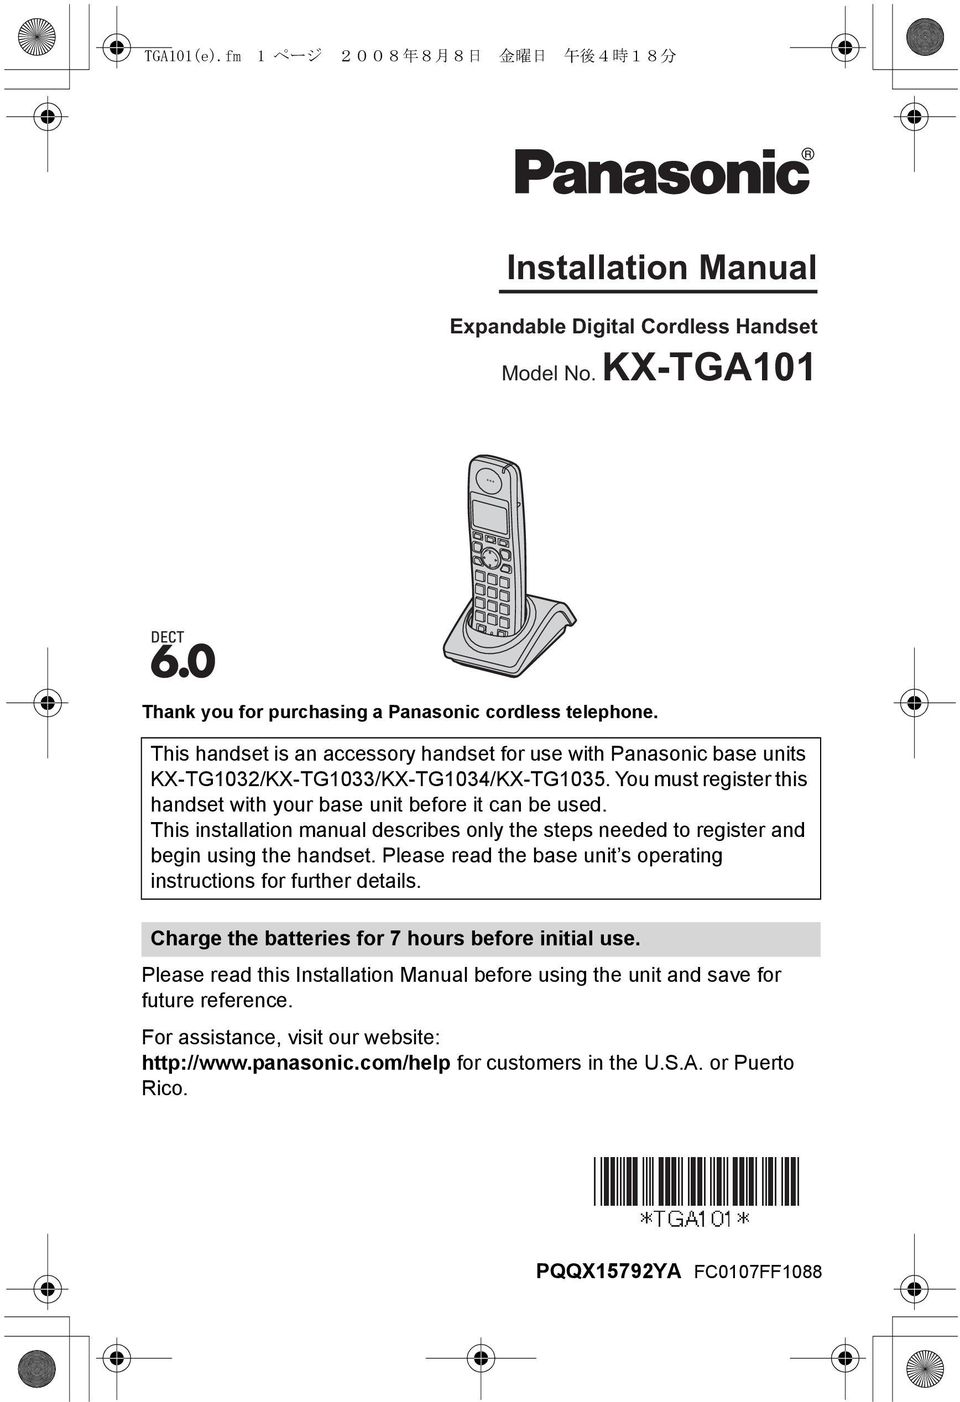 This installation manual describes only the steps needed to register and begin using the handset. Please read the base unit s operating instructions for further details.